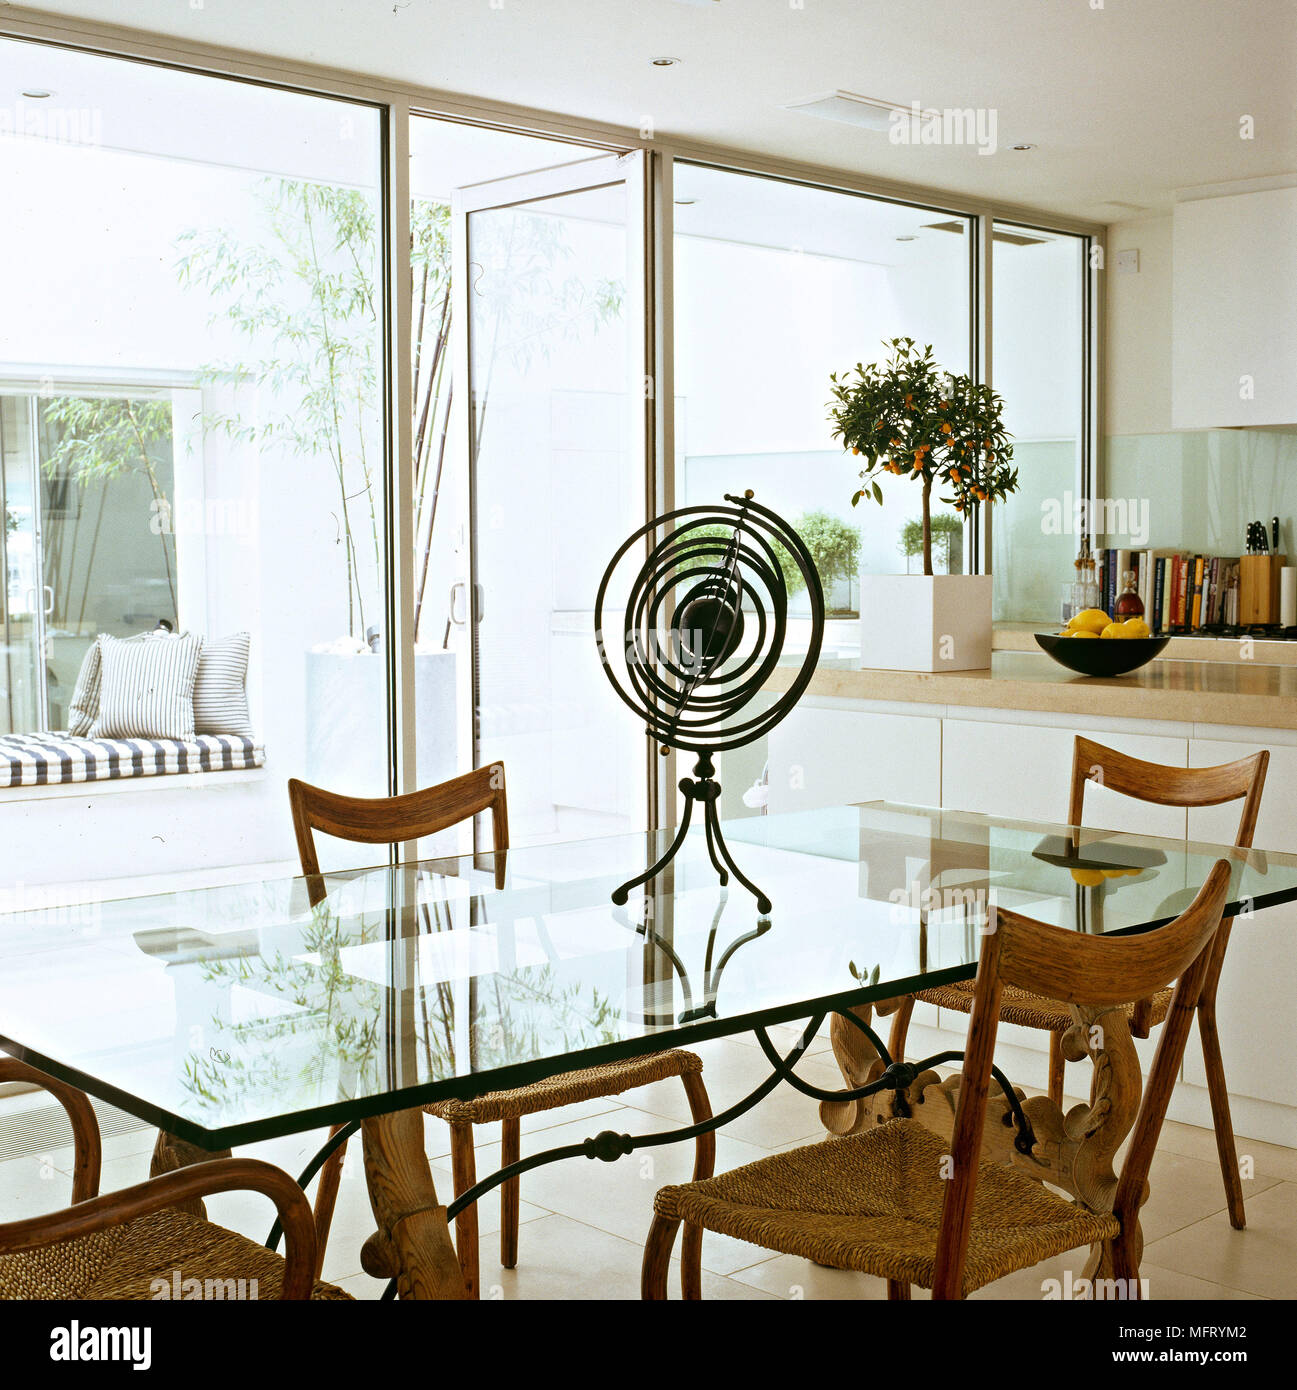 Kitchen Wood Diner Dining Stock Photos & Kitchen Wood Diner Dining ...